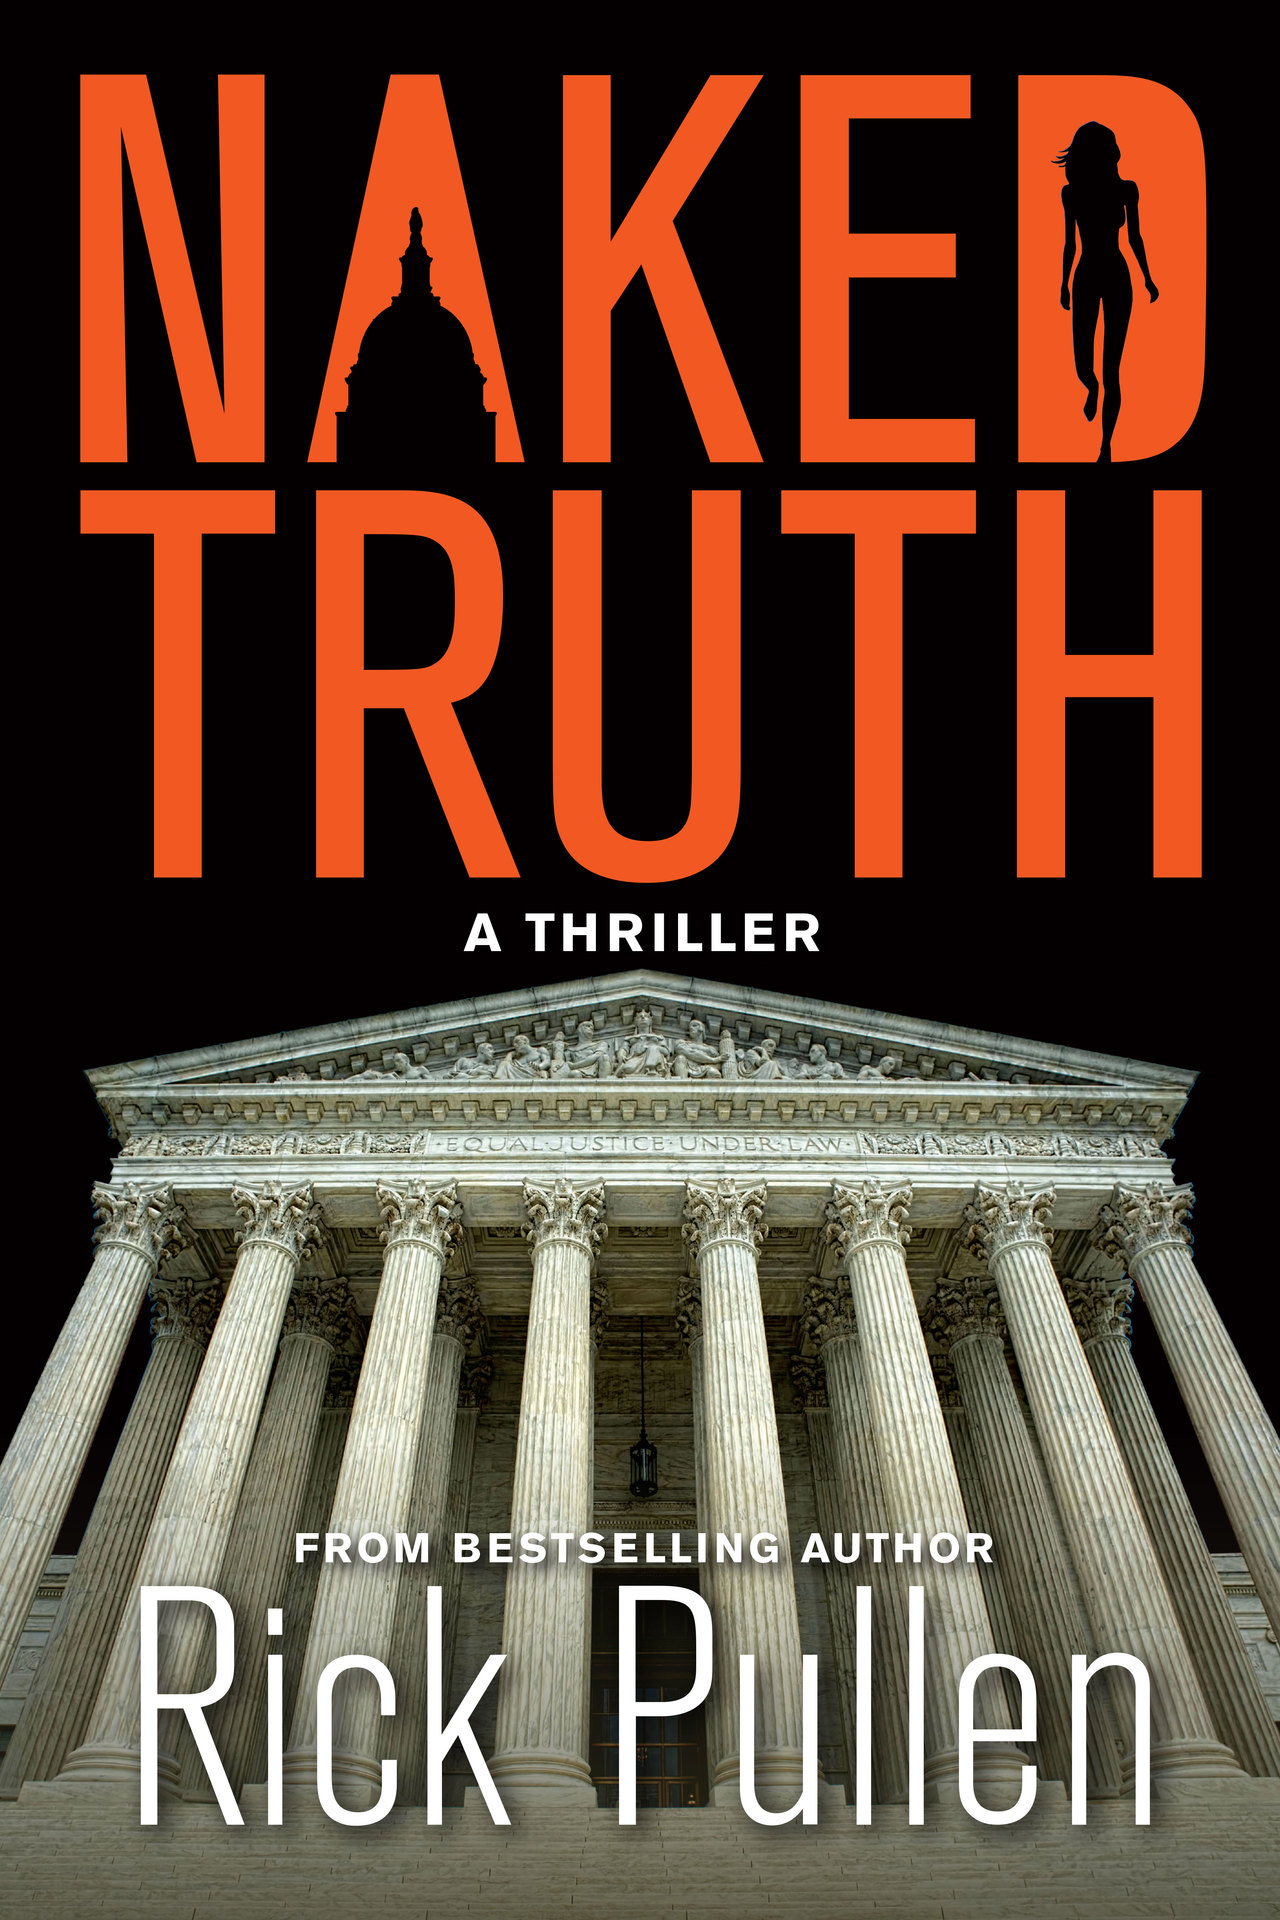 Naked truth jpeg cover